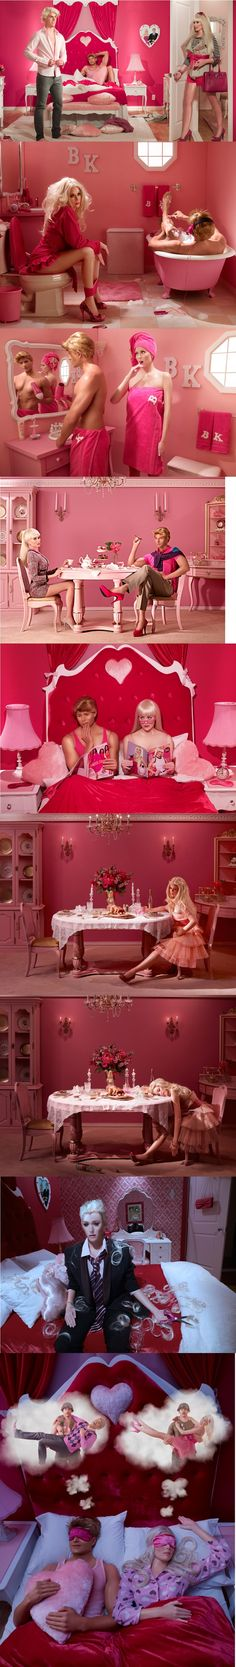 Barbie and Ken in real life... Who ever came up with this photoshoot was genius